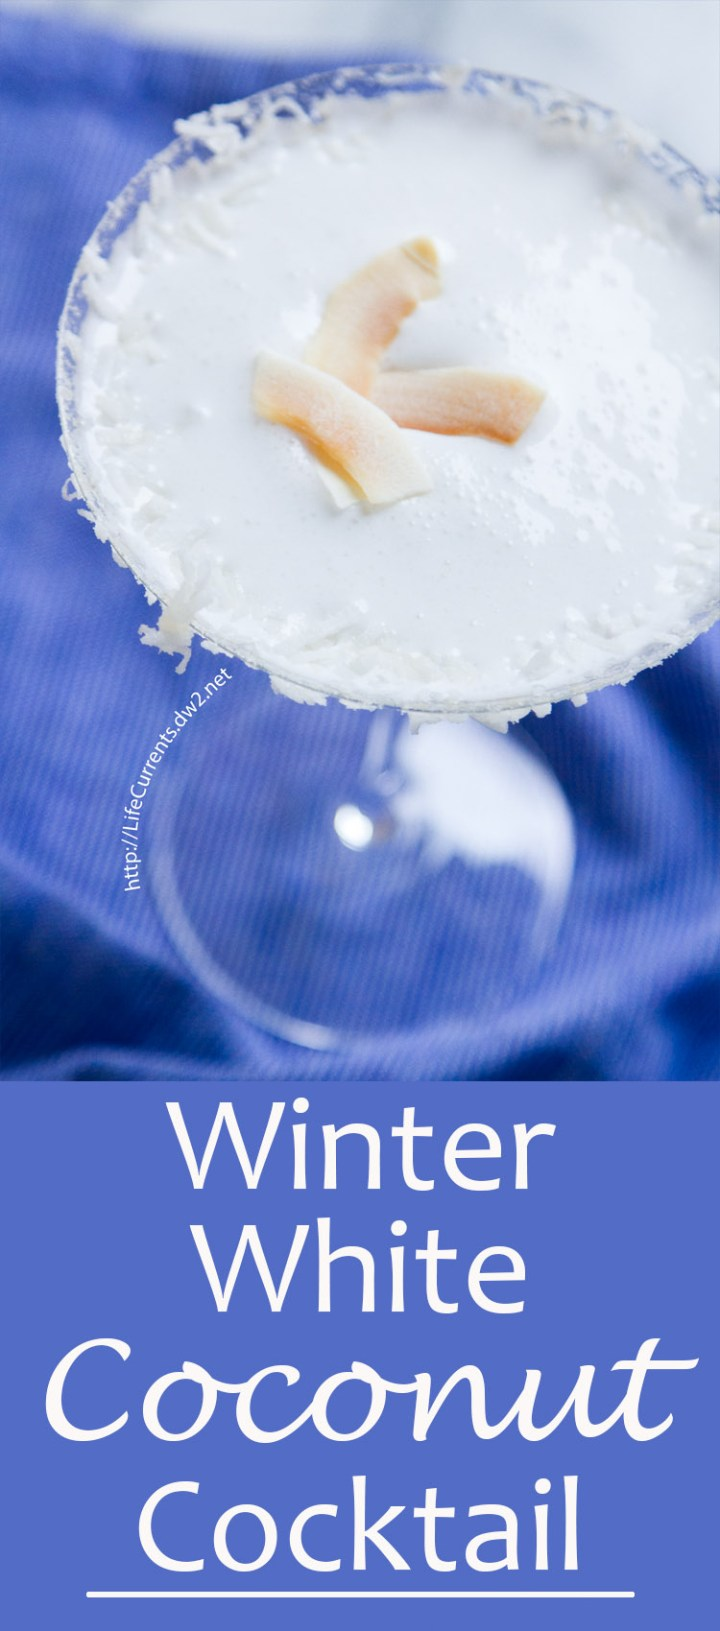 The Winter White Coconut Cocktail is the best of Winter, in a pretty glass! You'll love celebrating Winter with this wonderful cocktail. There's an alcohol-free recipe option too!